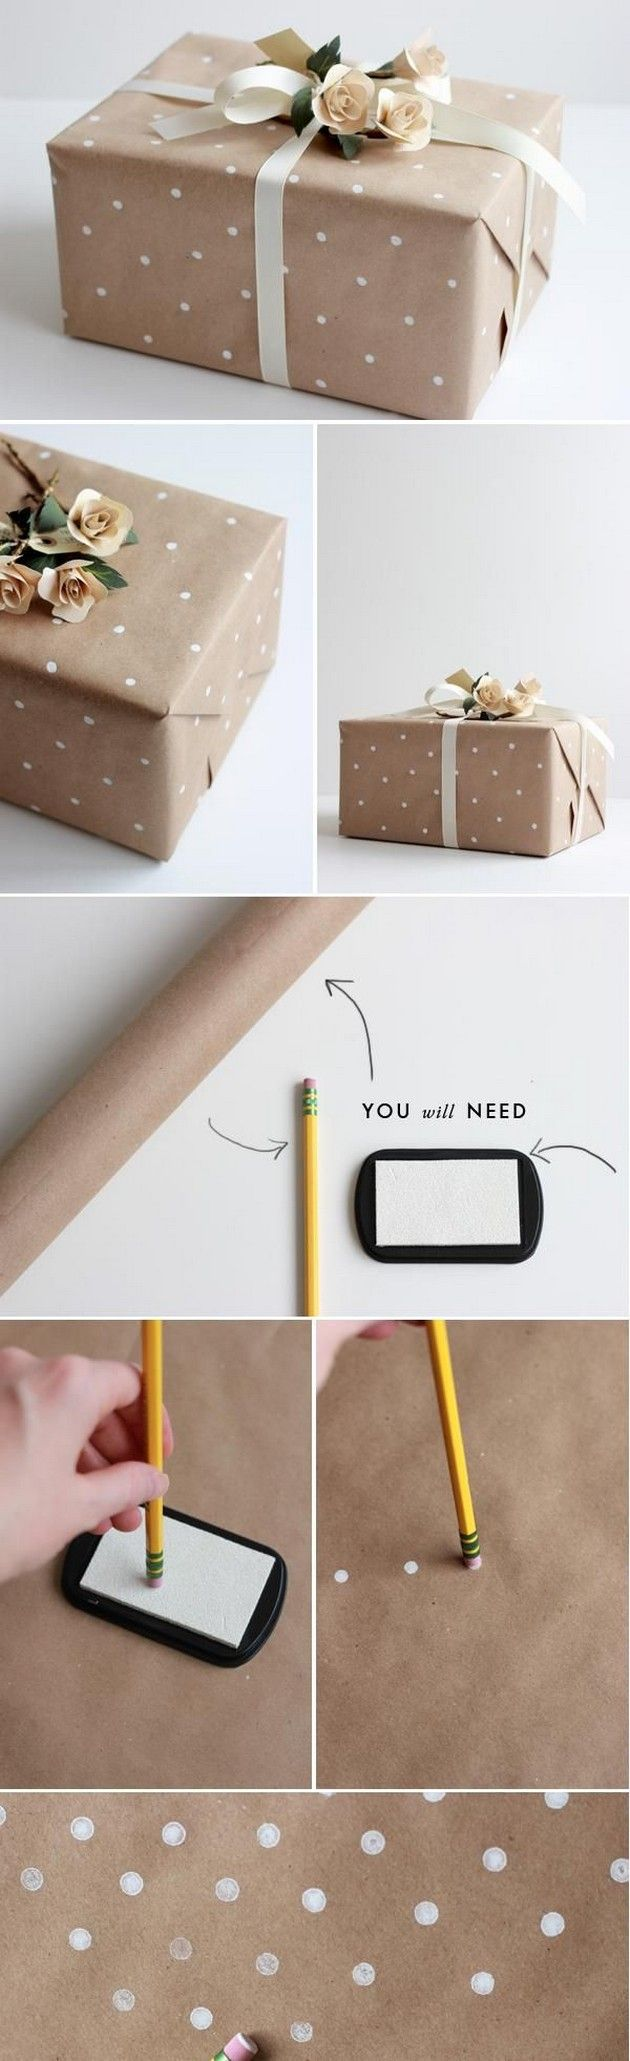 Vitamin-Ha – DIY Gift wrap ideas - polka dot your own gift wrapping paper